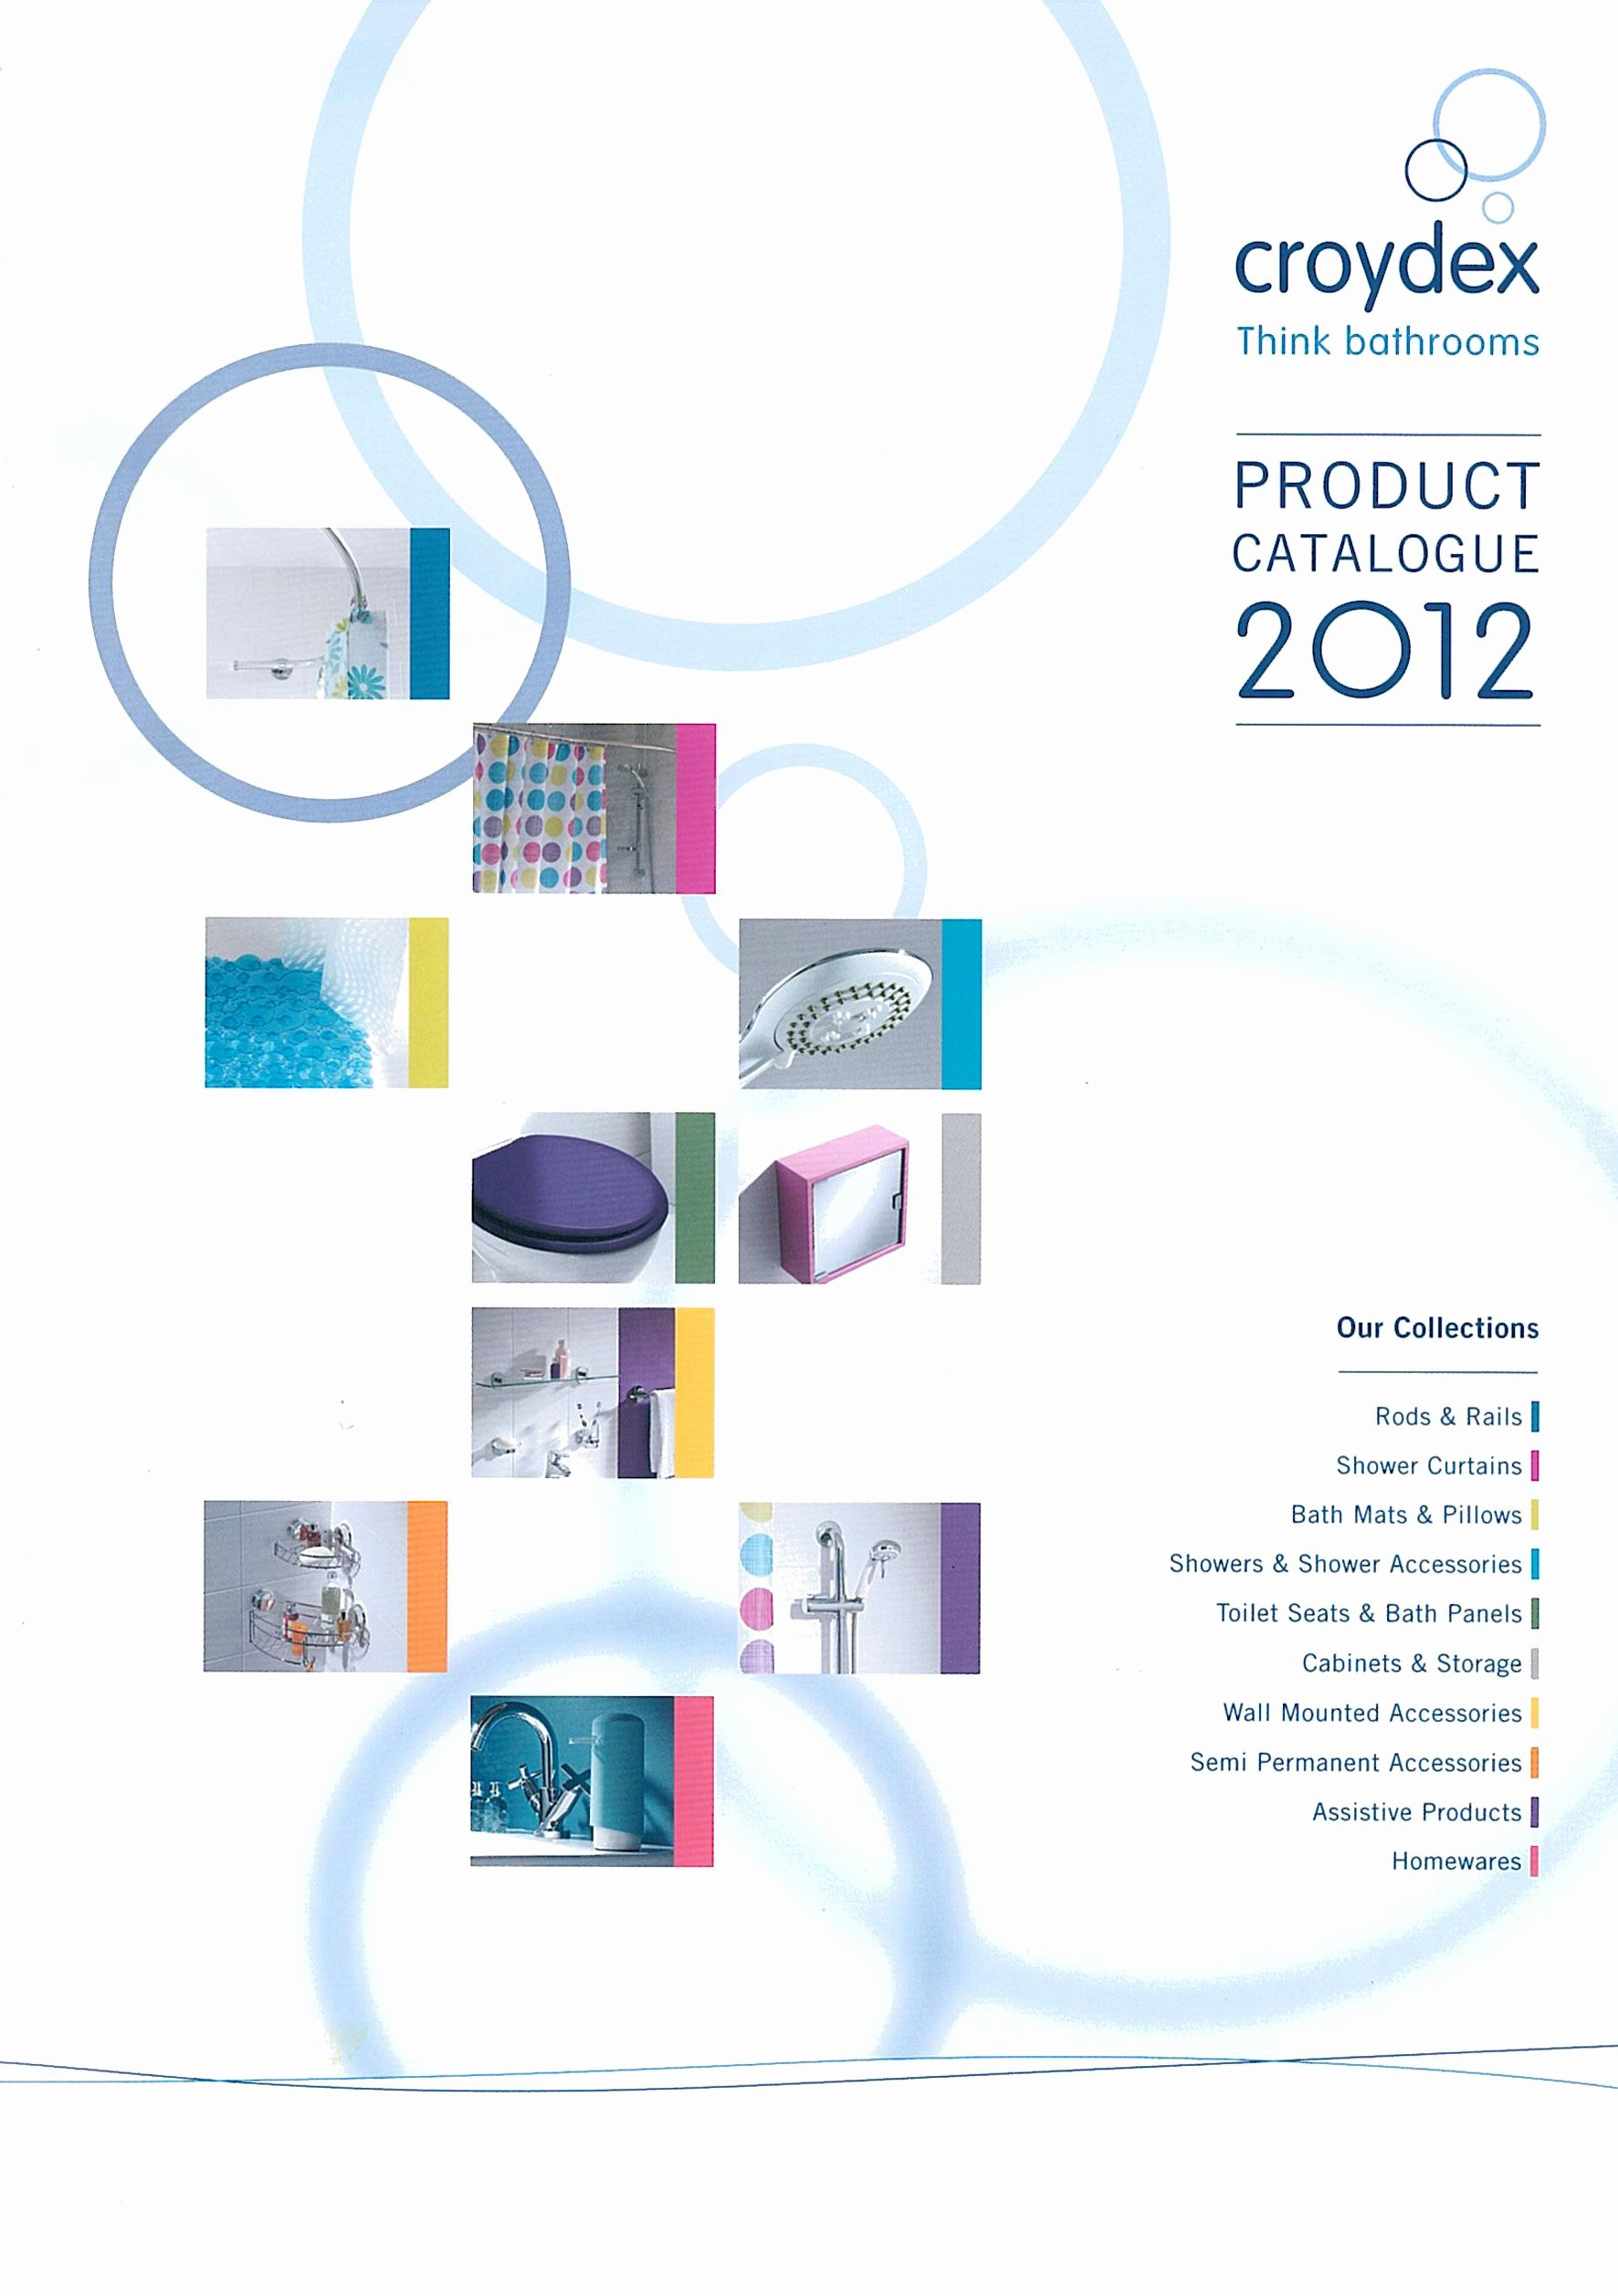 Product Catalog Template Word Best Of A Catalogue Of Innovation and Design – the Croydex 2012